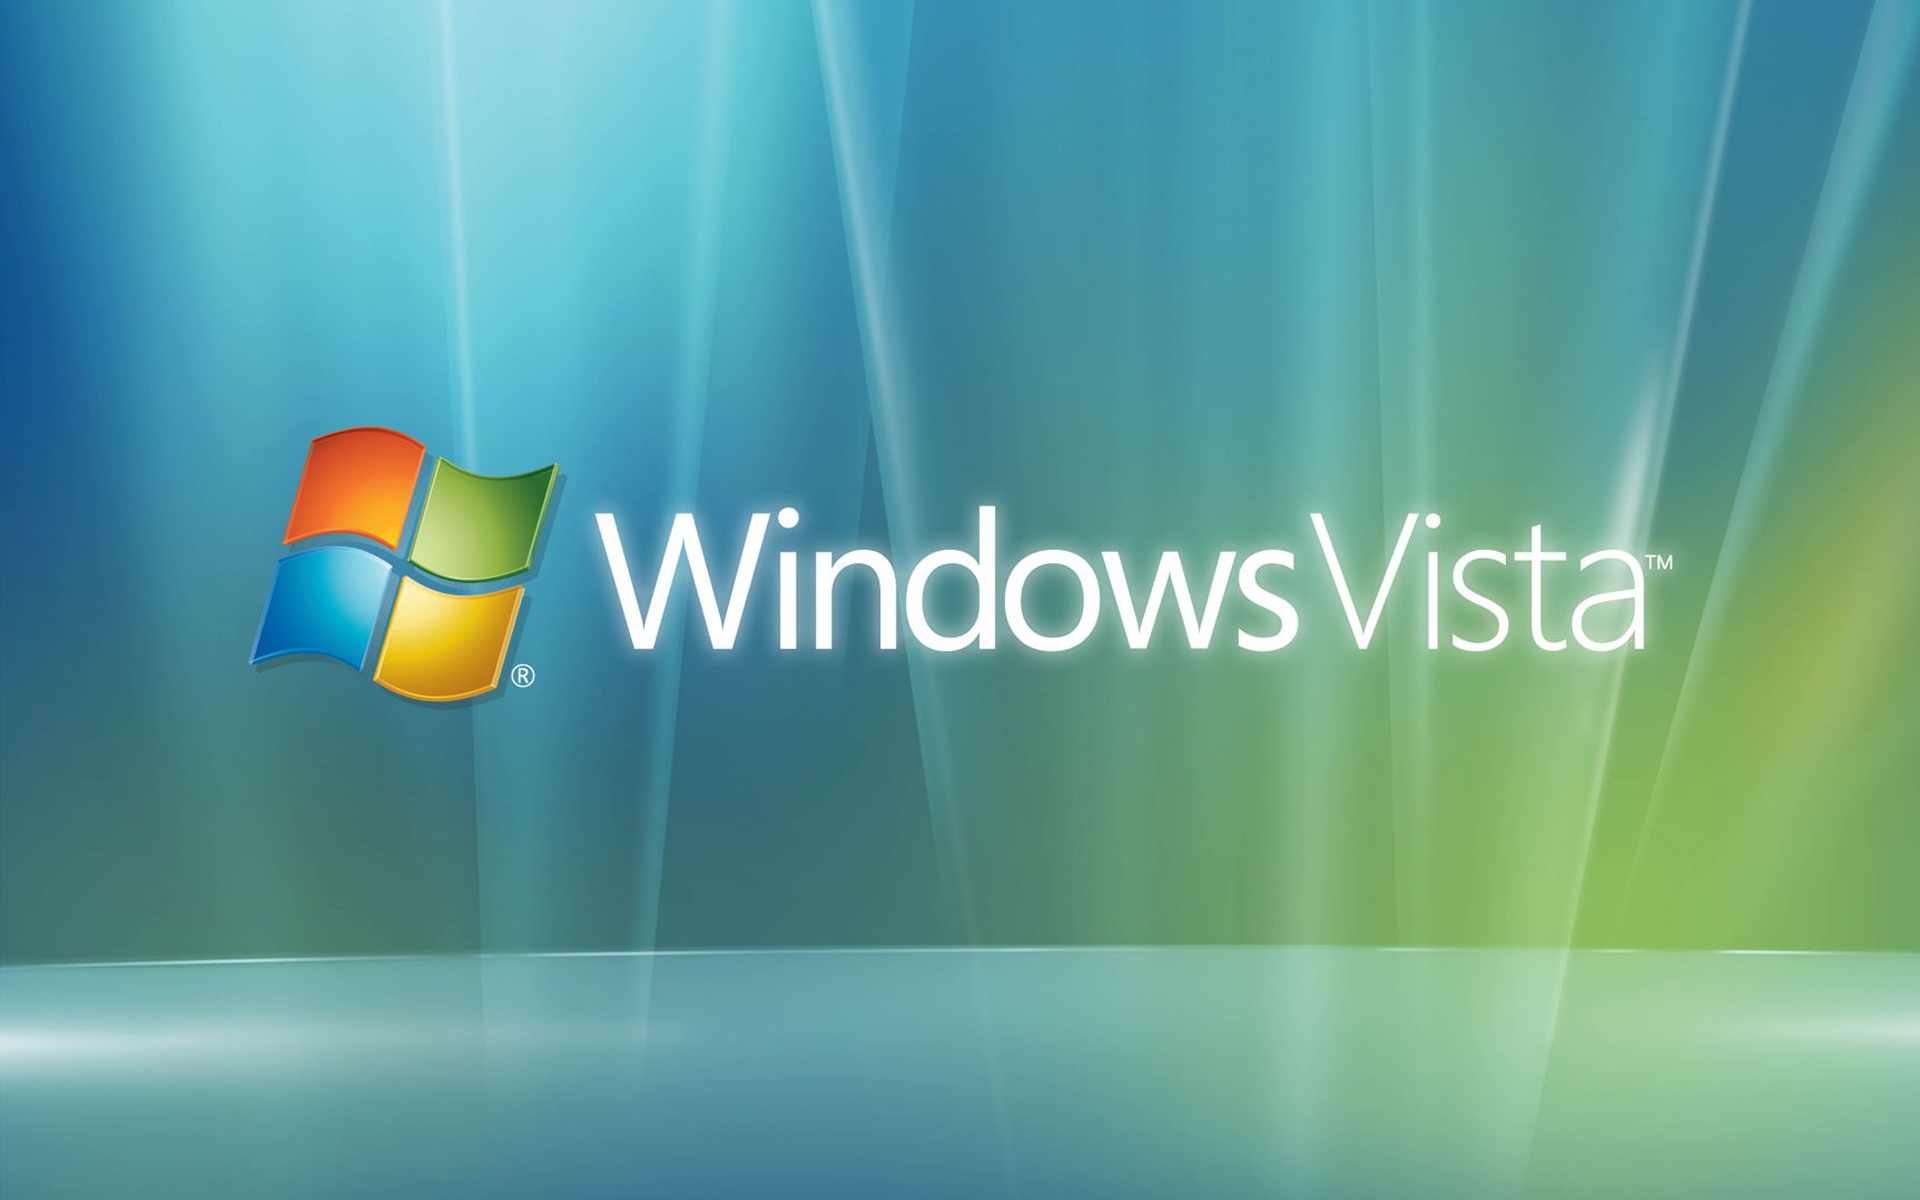 windows vista1 El soporte para Windows Vista SP1 finalizara el 12 de julio